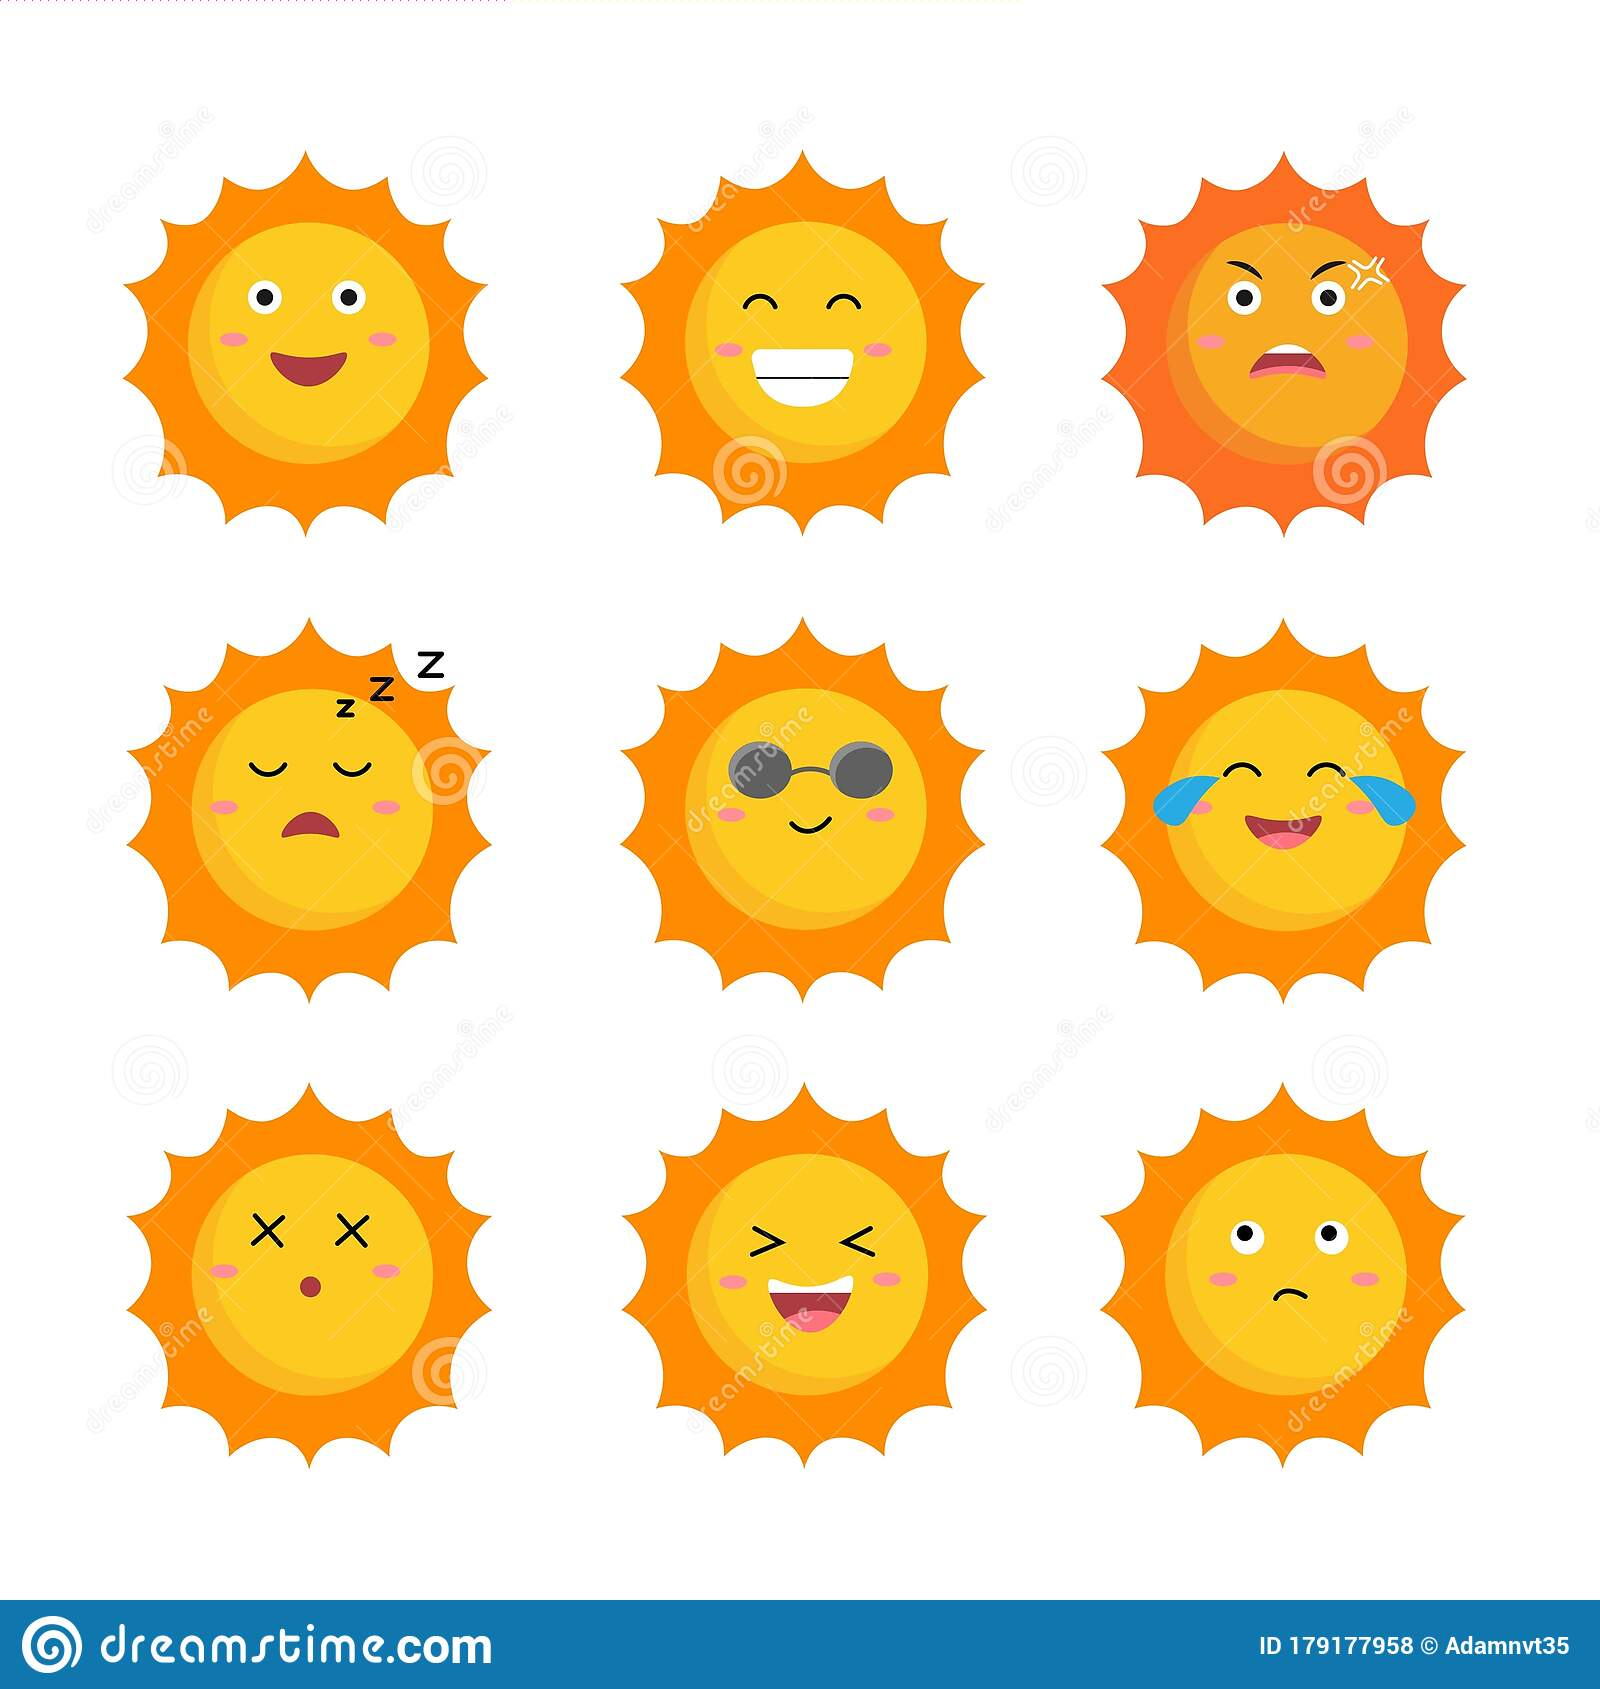 Set Of The Suns Cute Suns Yellow Faces Emoji Summer Emoticons Vector Illustration Isoalted On White Background Stock Vector Illustration Of Graphic Love 179177958